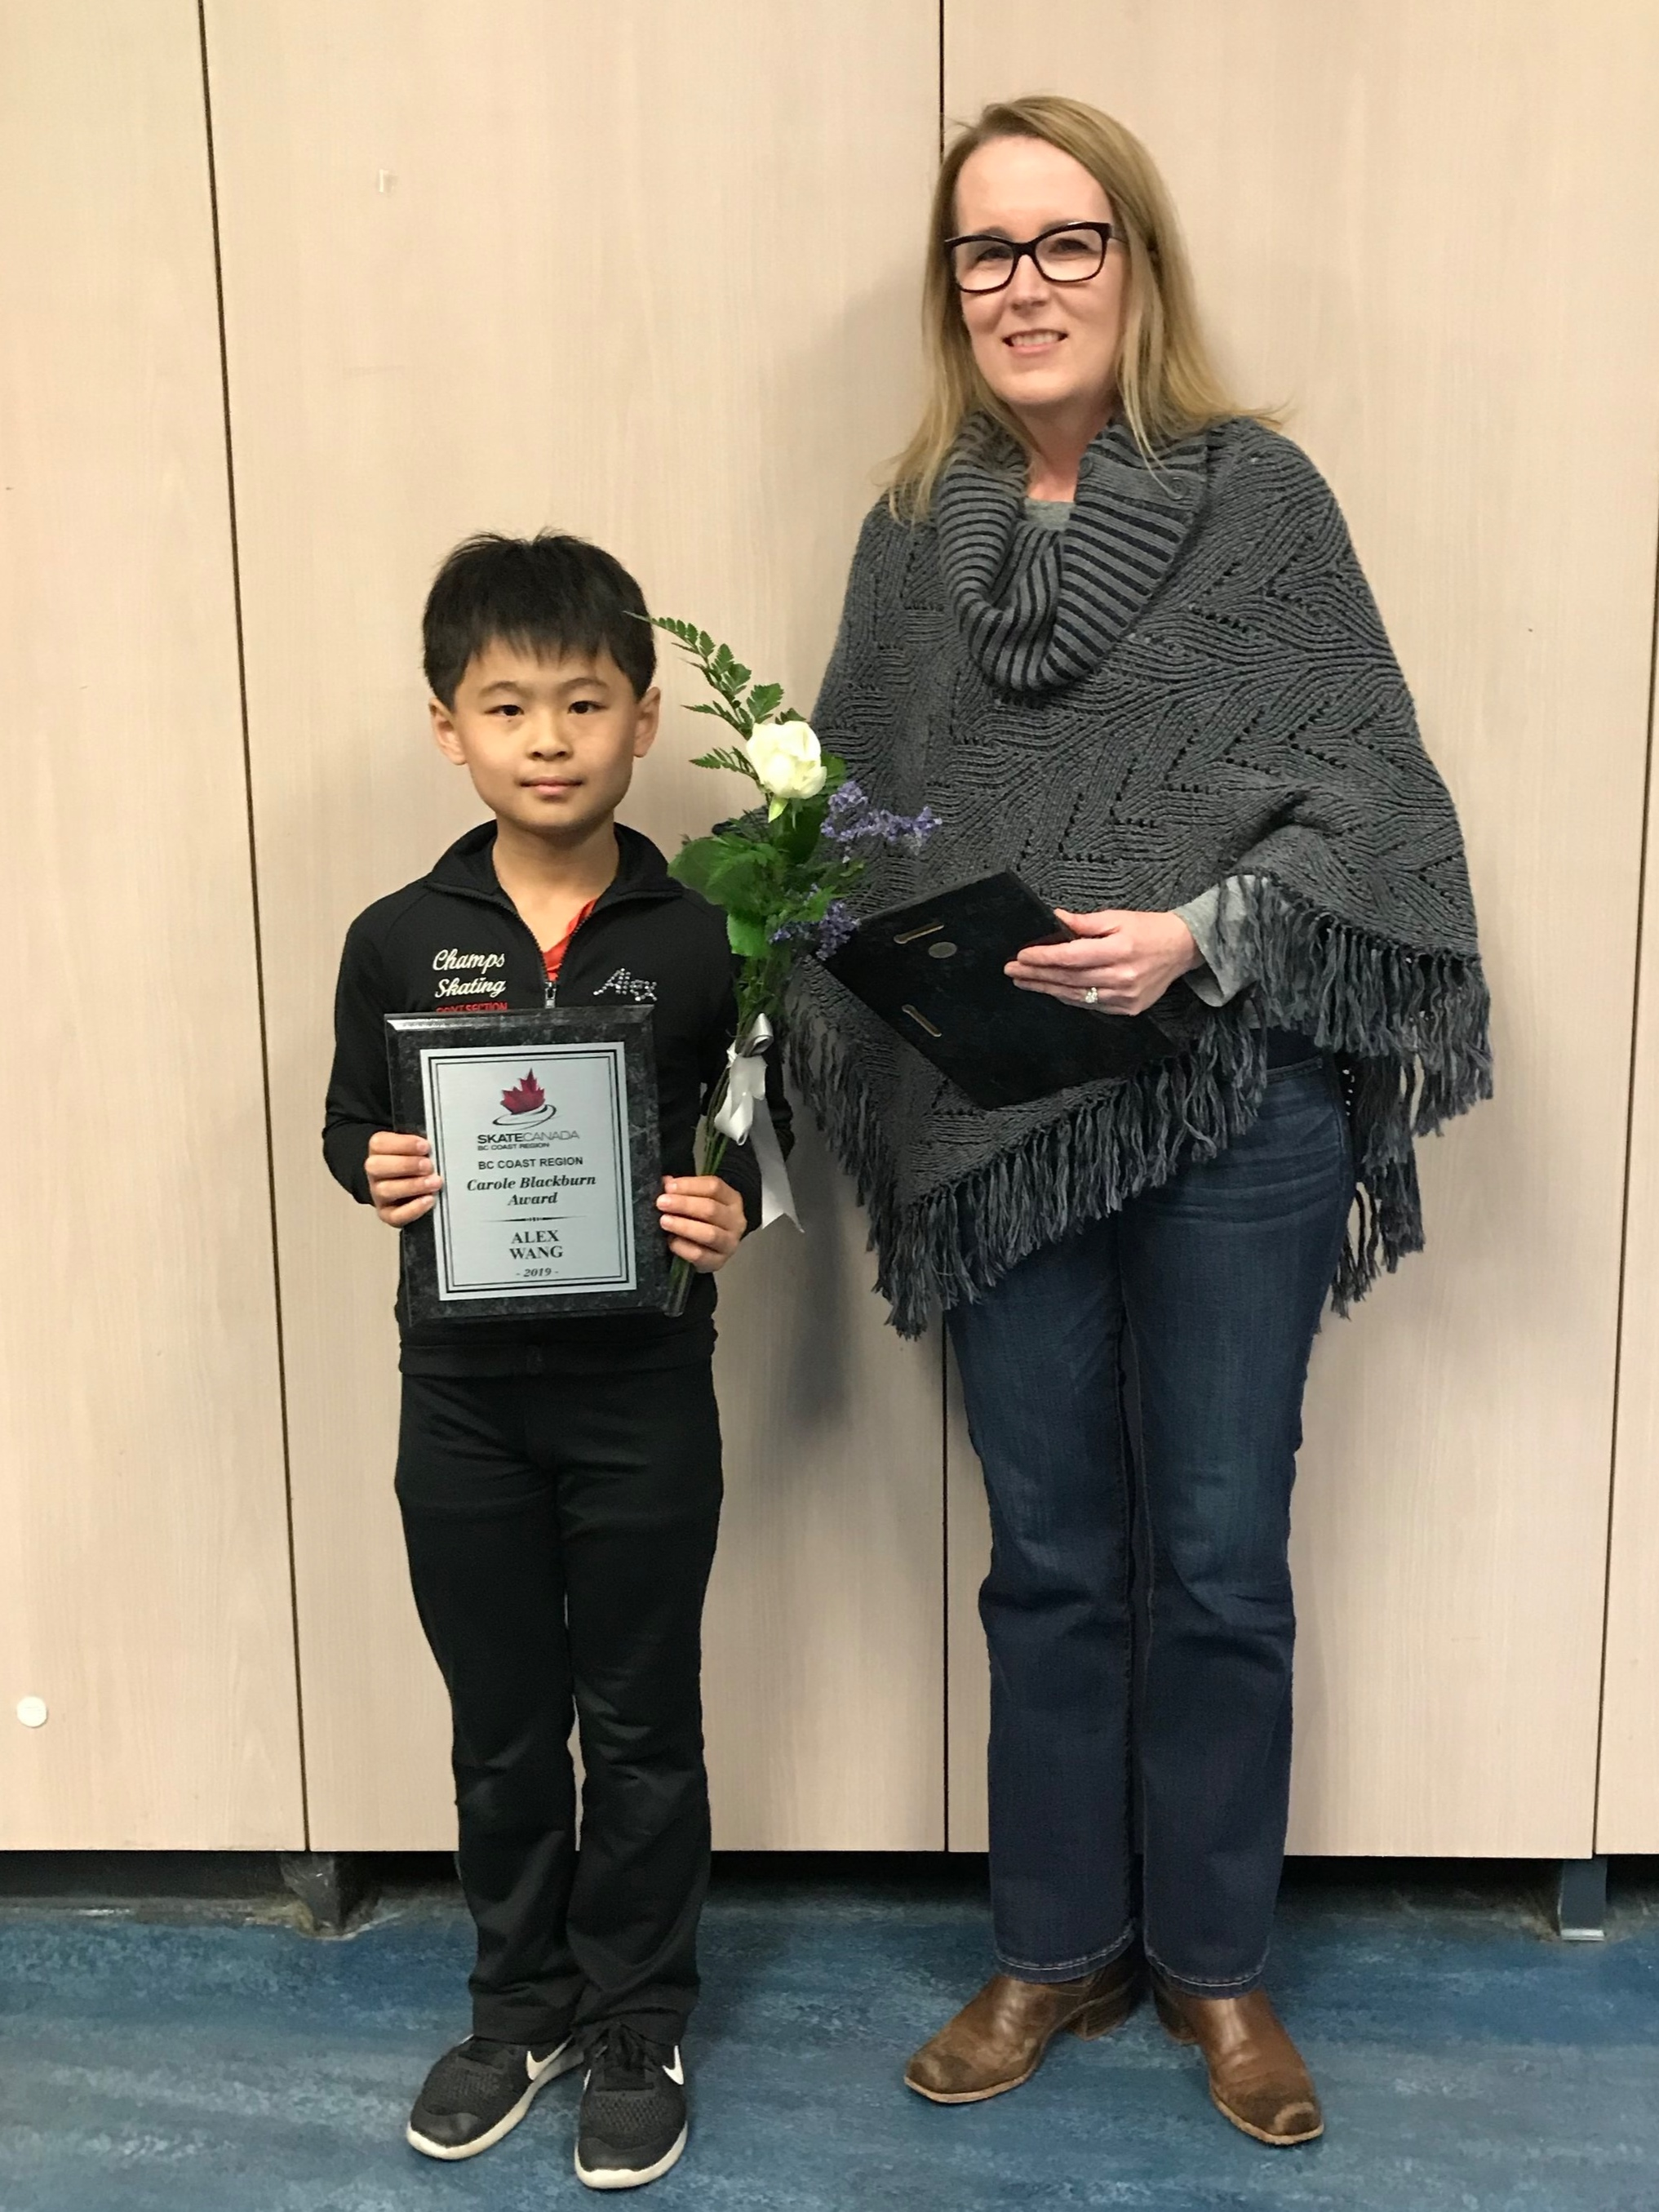 Alex Wang - Winner of the 2019 Carole Blackburn Memorial Award (Juvenile Men)